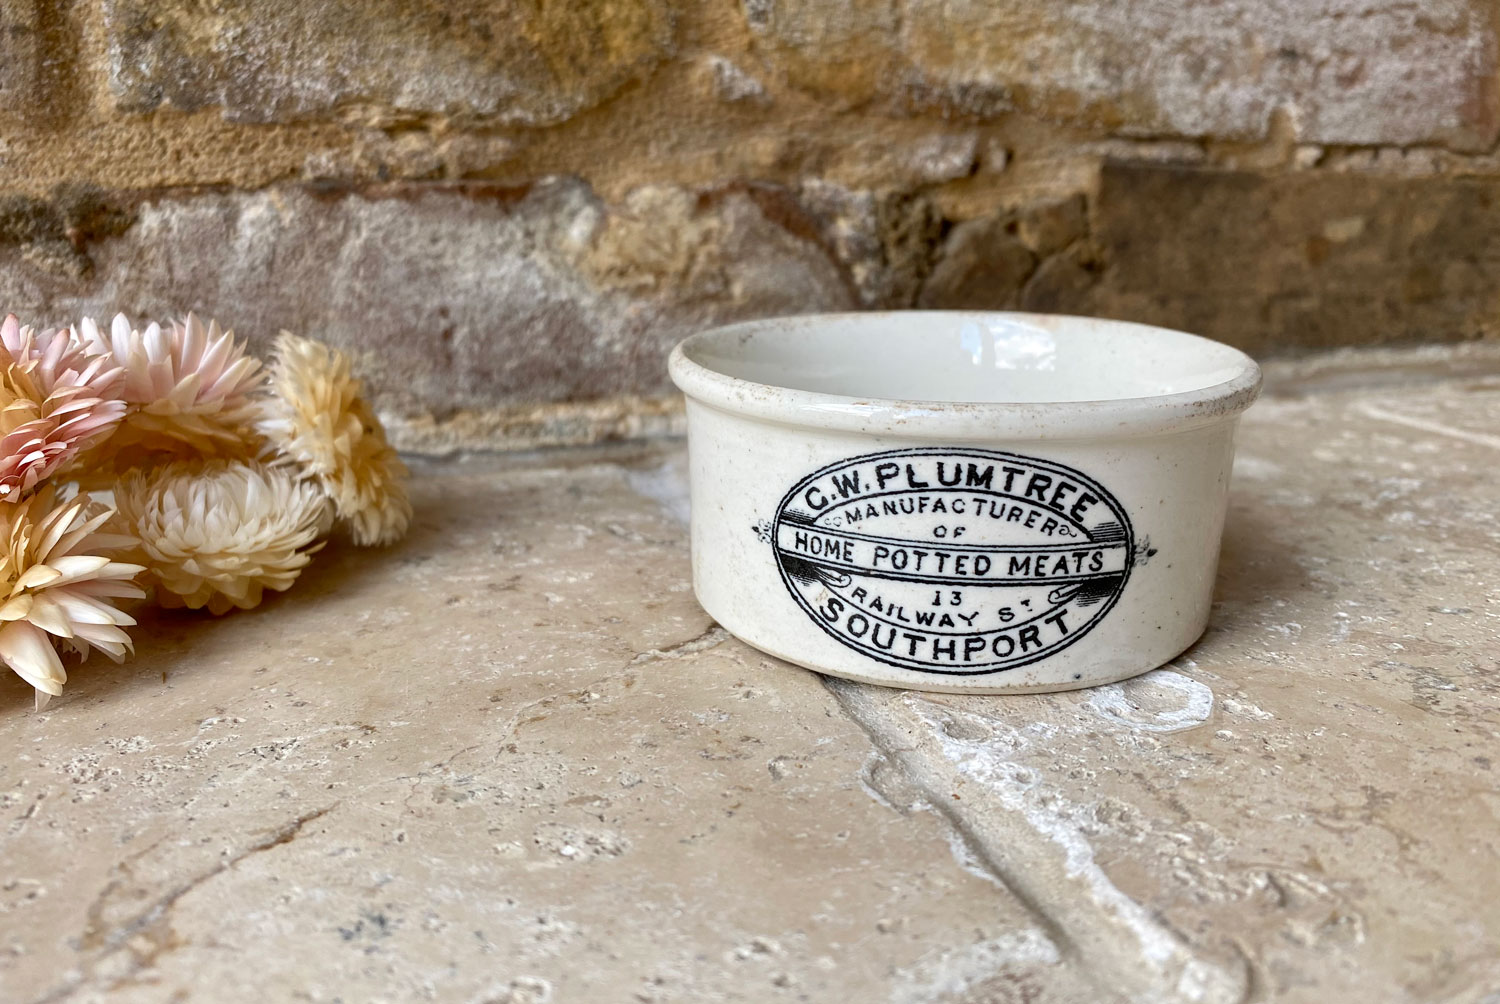 vicotorian antique white ironstone paste potted meat english advertising pot gw plumtree southport